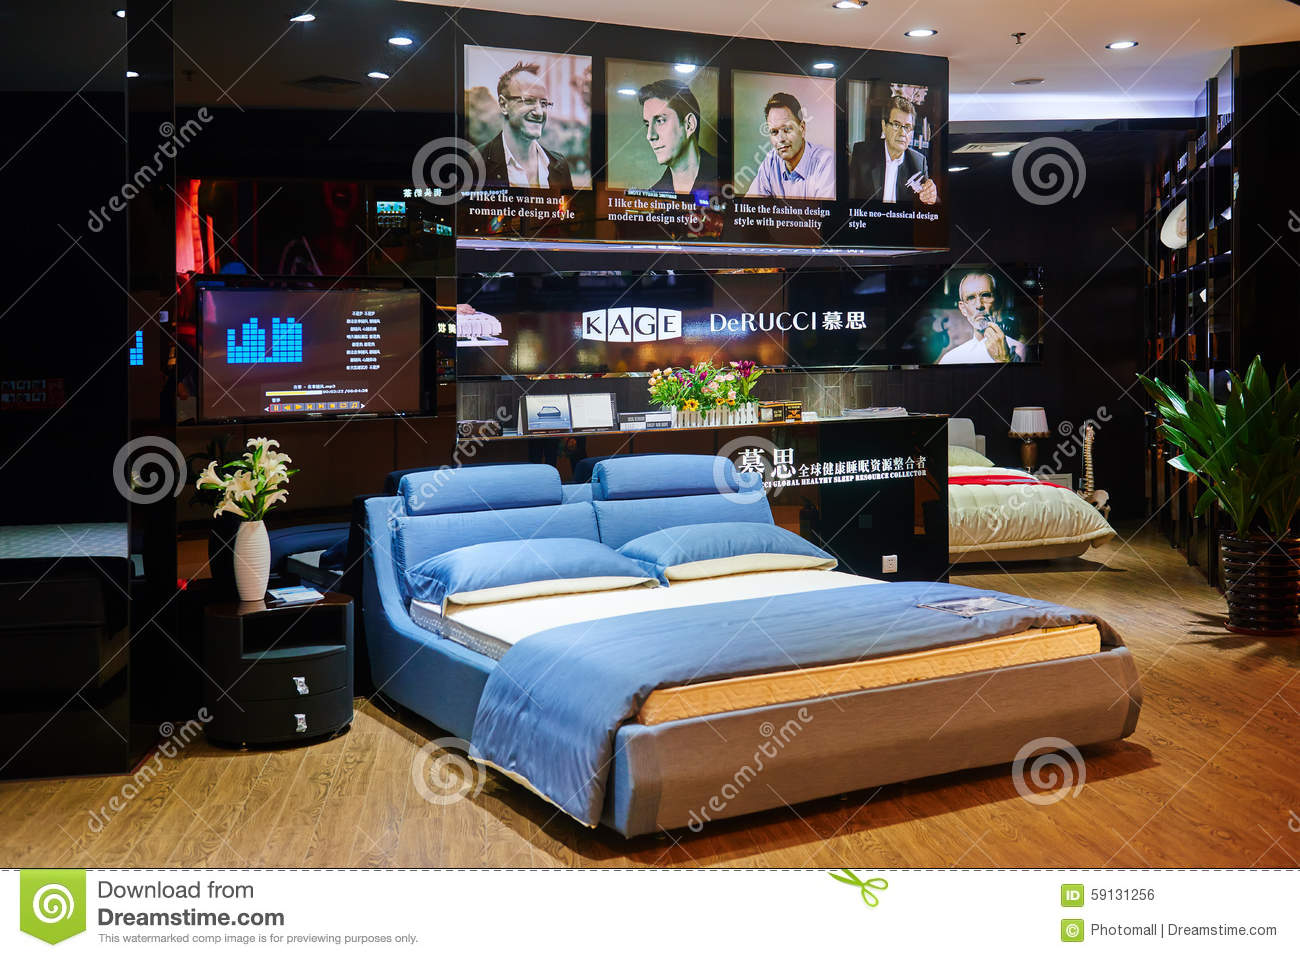 Bed Mattress Shop Trendy Bedroom Editorial Photo Image 59131256